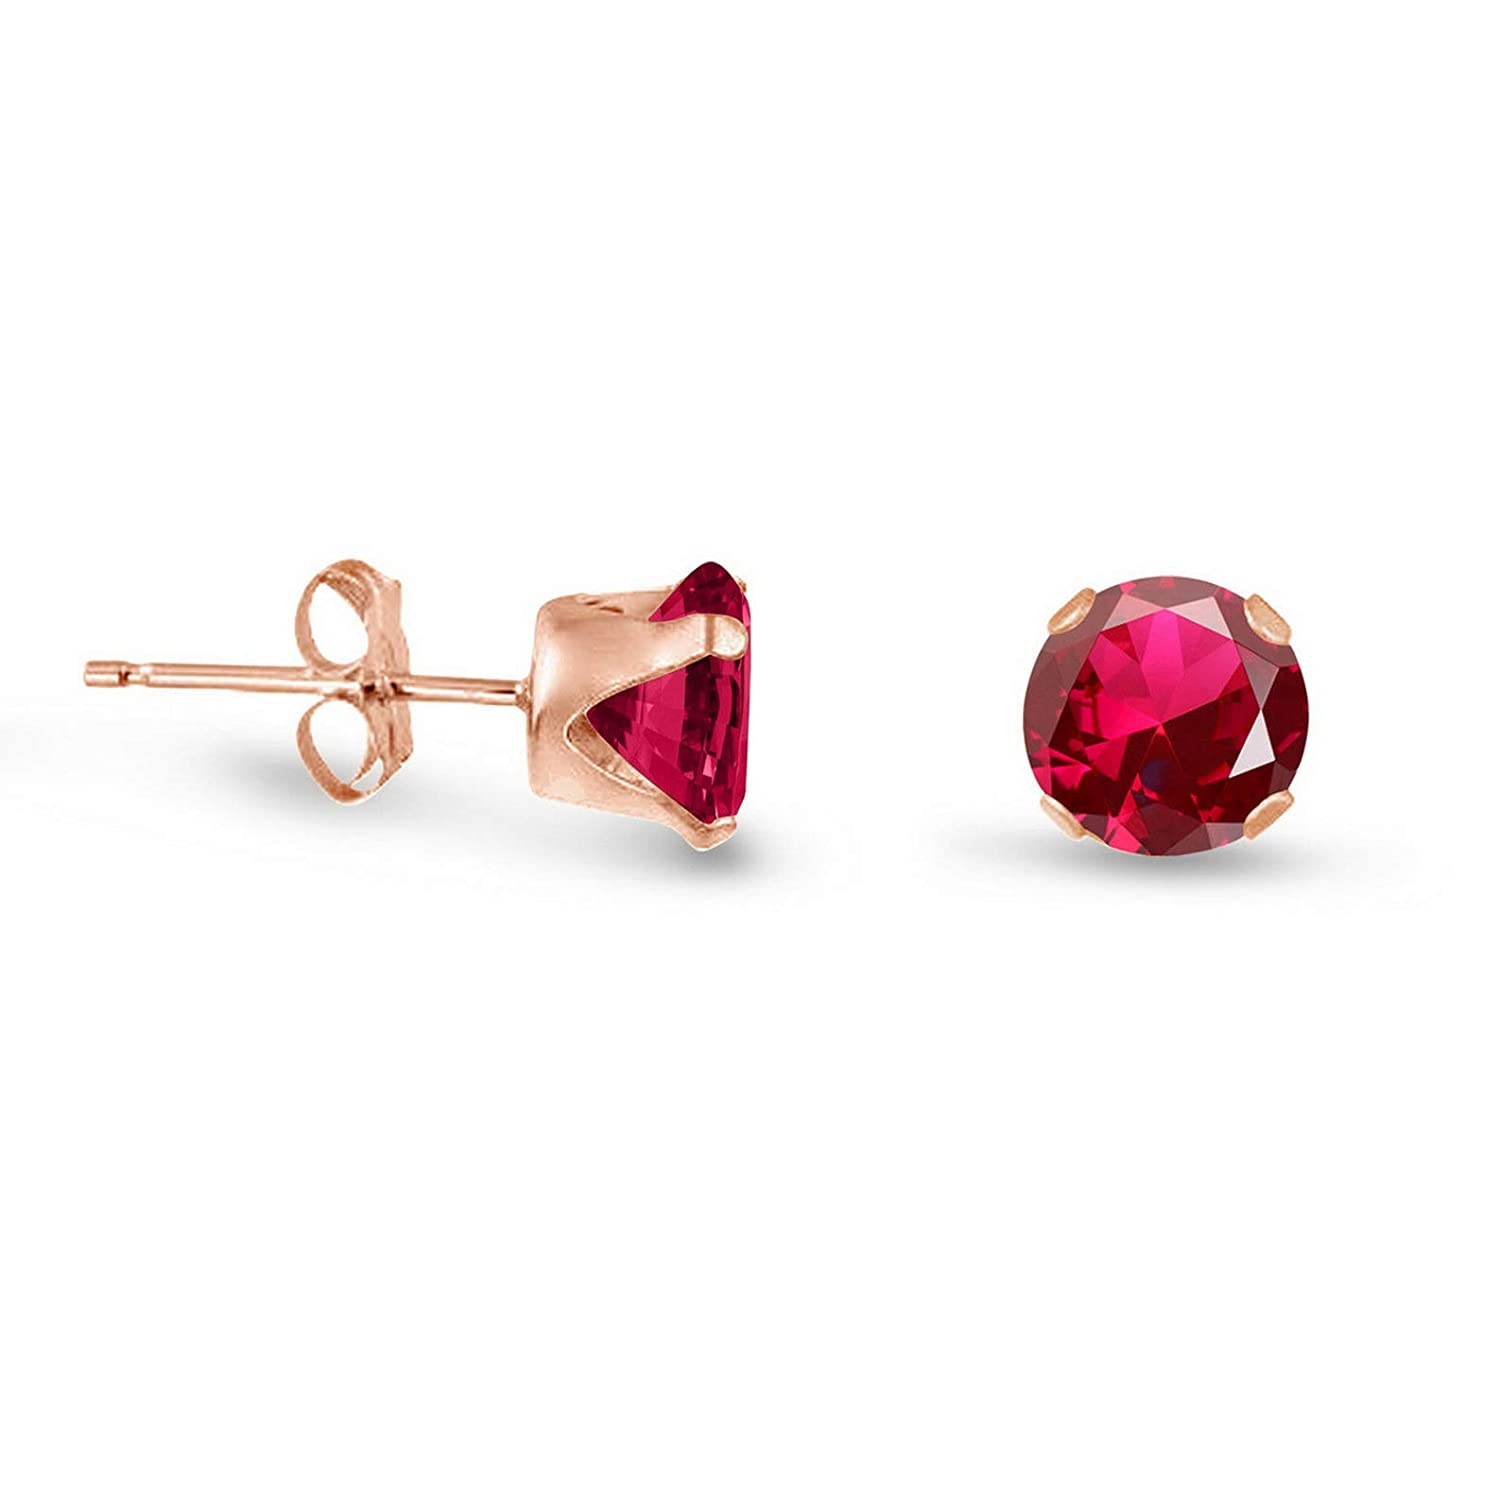 6mm Campton Round Created Ruby Rose Gold Plated Sterling Silver Stud Earrings Choose Size Large Model ERRNGS 14301